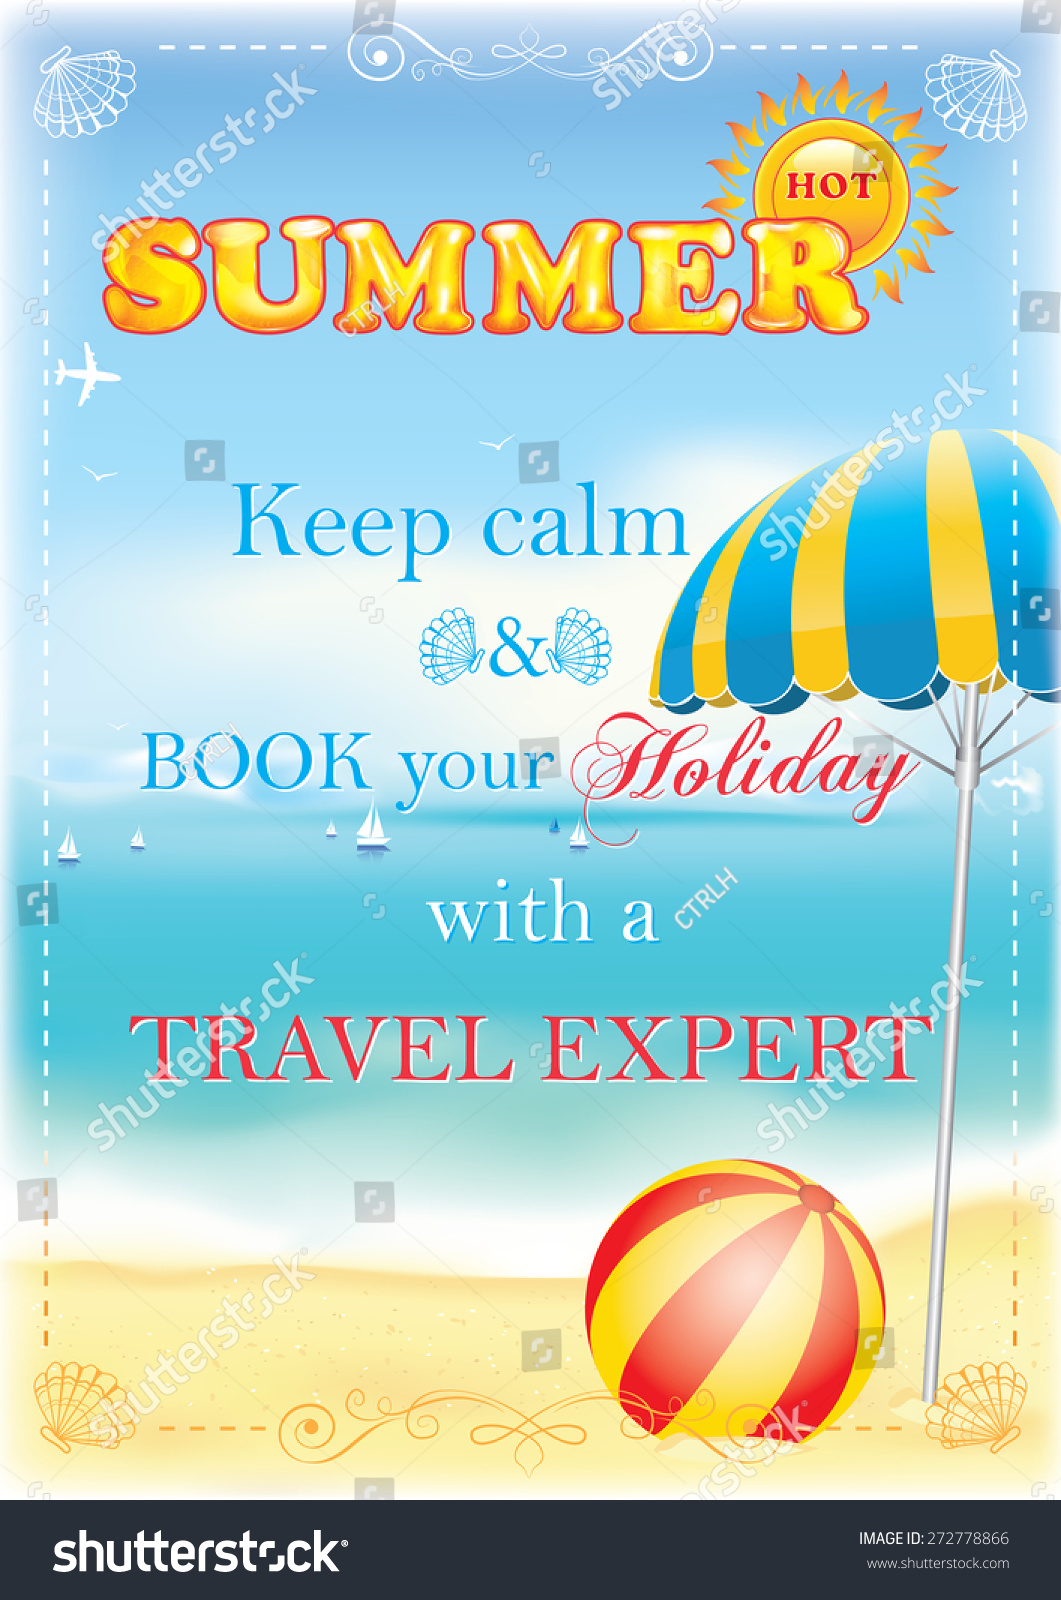 Summer Advertising For Travel Agencies. Keep Calm And Book Your Holiday  With A Travel Expert